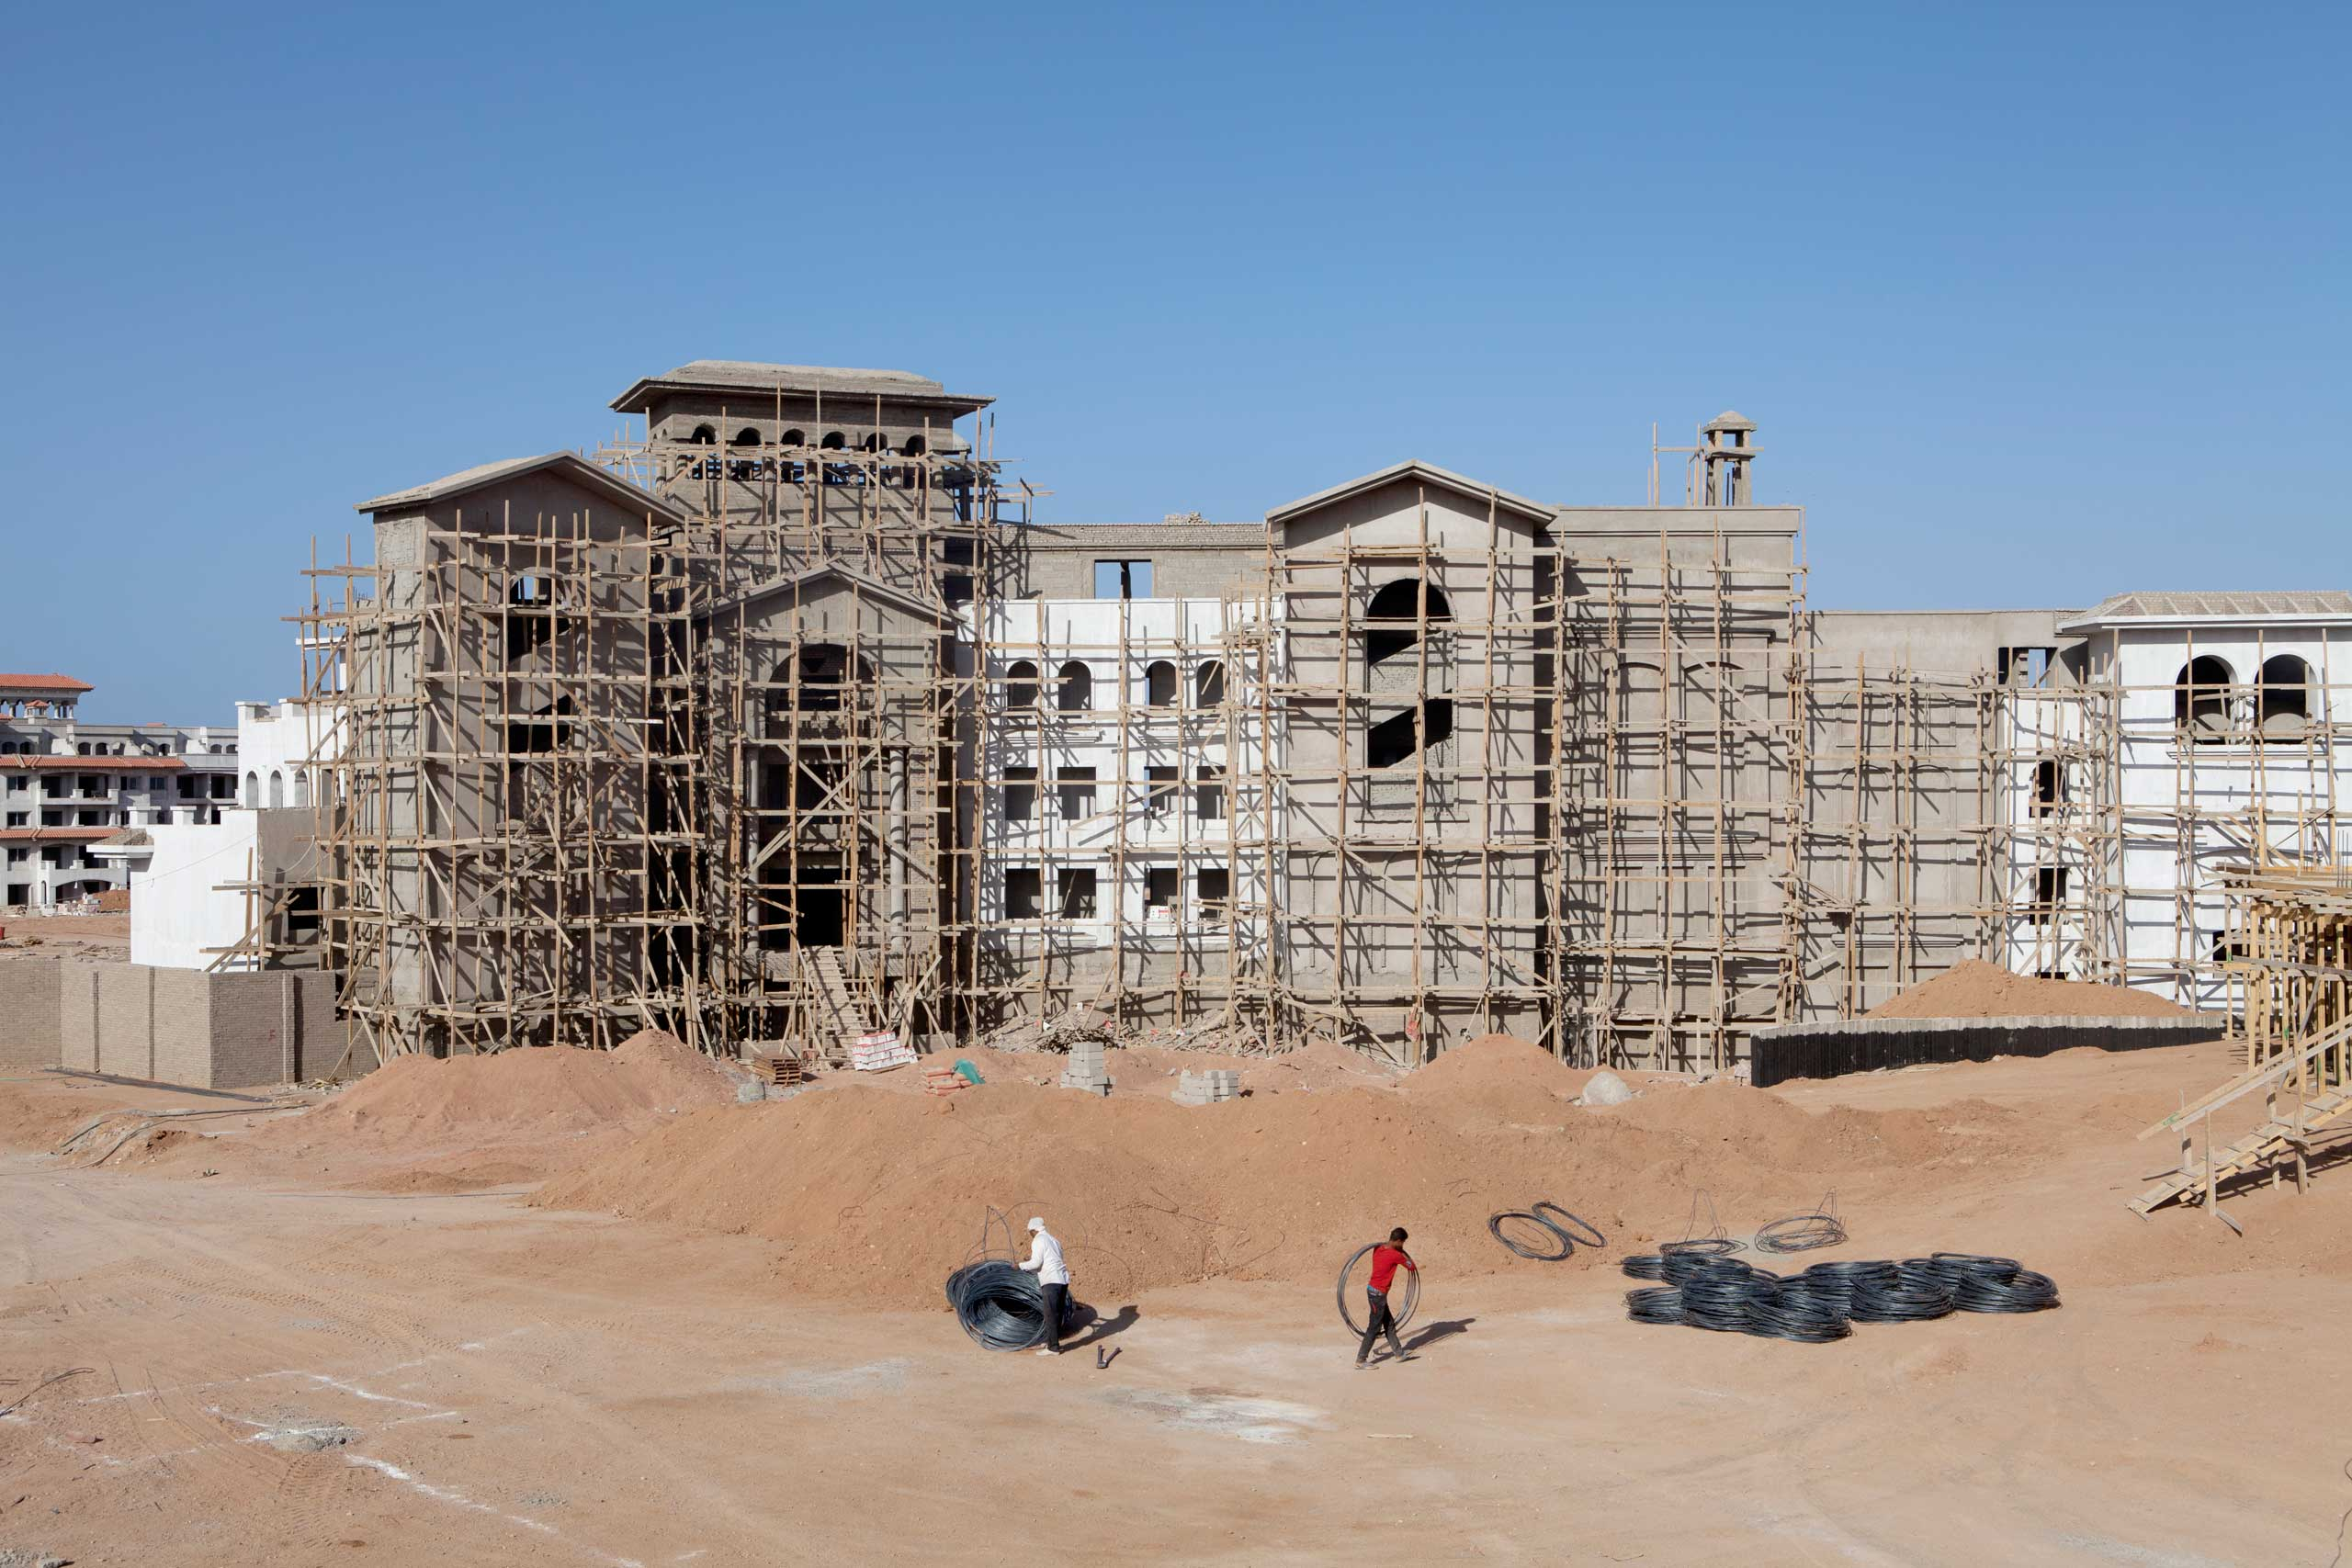 A construction site in in Sharm el Sheikh,  Sinai, March 2015.  Despite an abundance of already available buildings, more is being built.